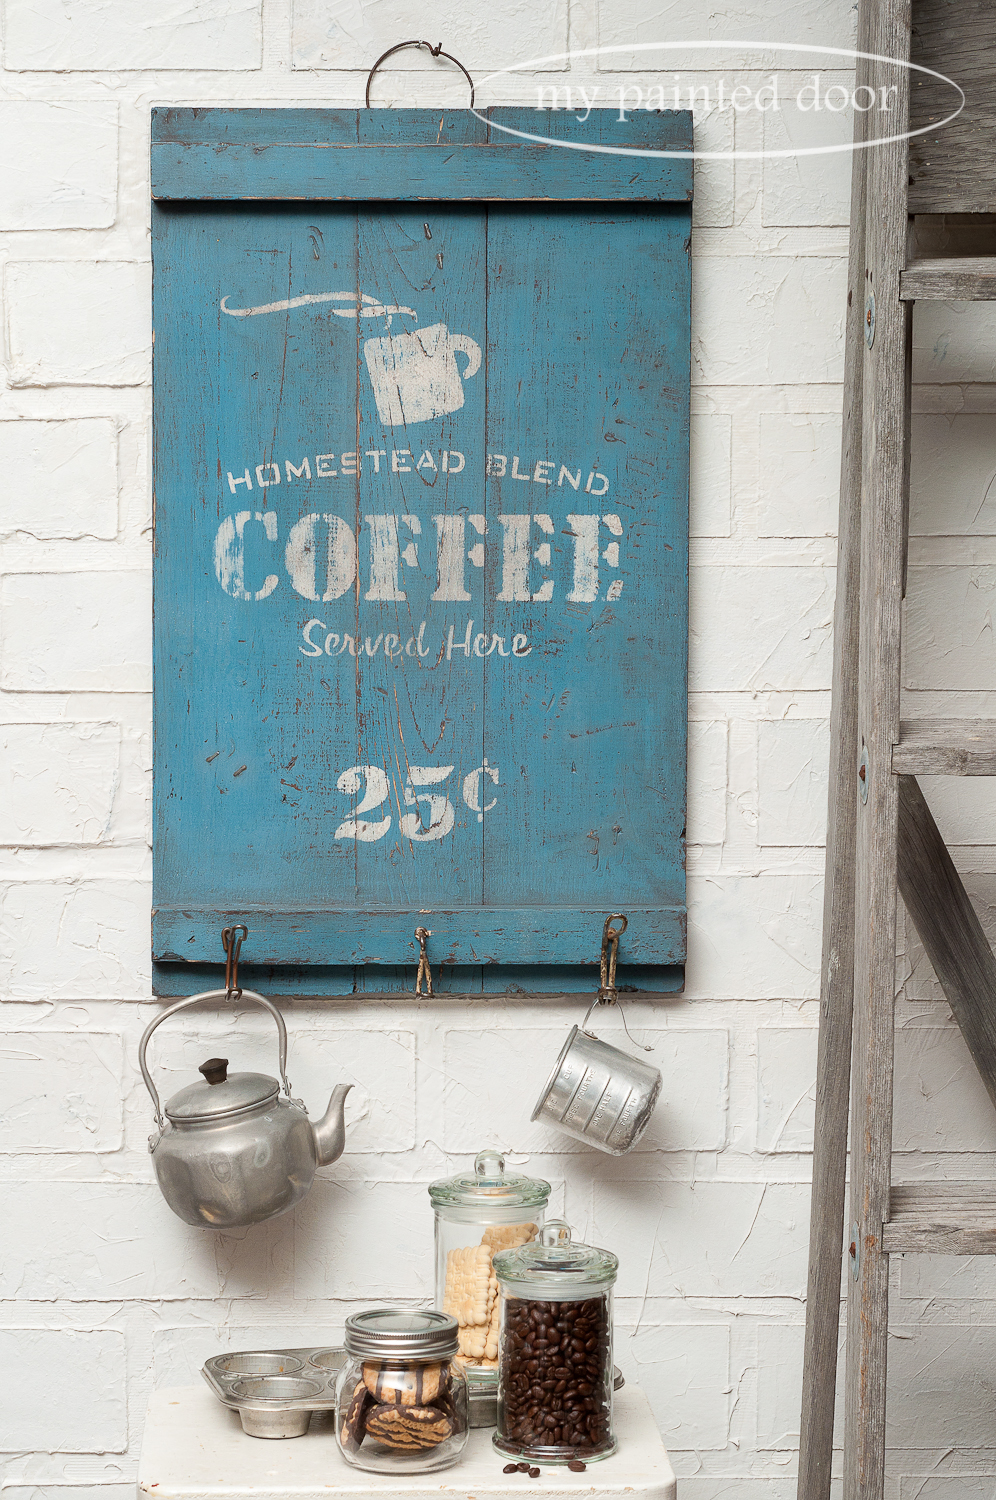 My Painted Door is offering Sign Workshops using Miss Mustard Seed's Milk Paint. Our workshops will teach you tons of tips and techniques on how to take new wood and create an authentic looking vintage sign by distressing, layering colours and more.